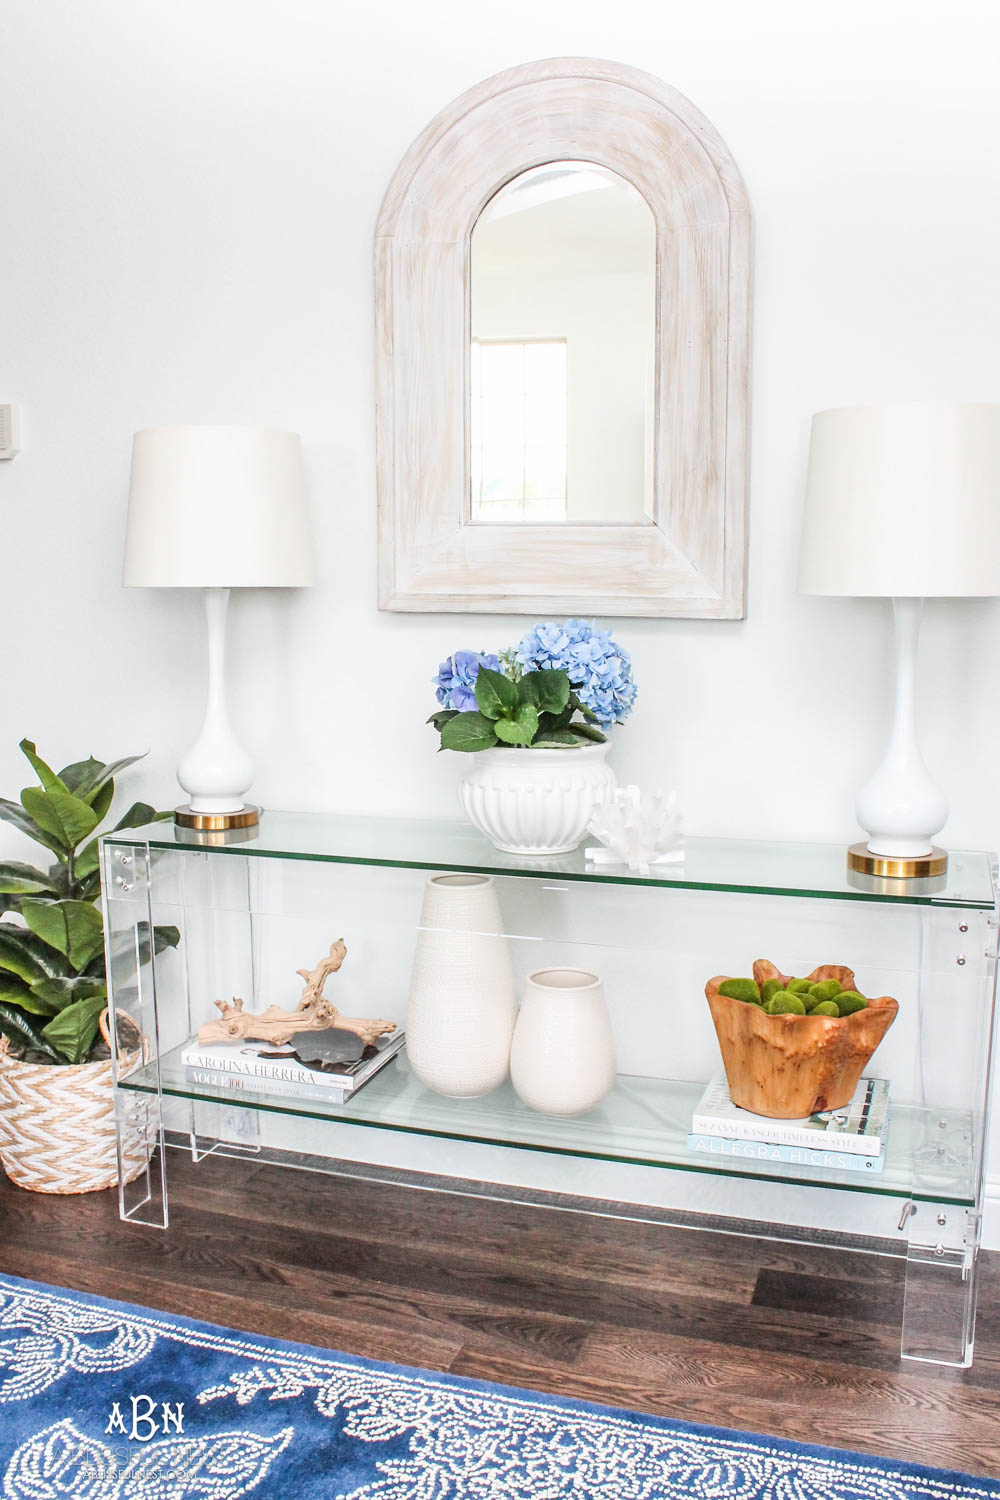 Add potted plants to your home for a beautiful pop of color for spring decor. #ABlissfulNest #springideas #springdecor